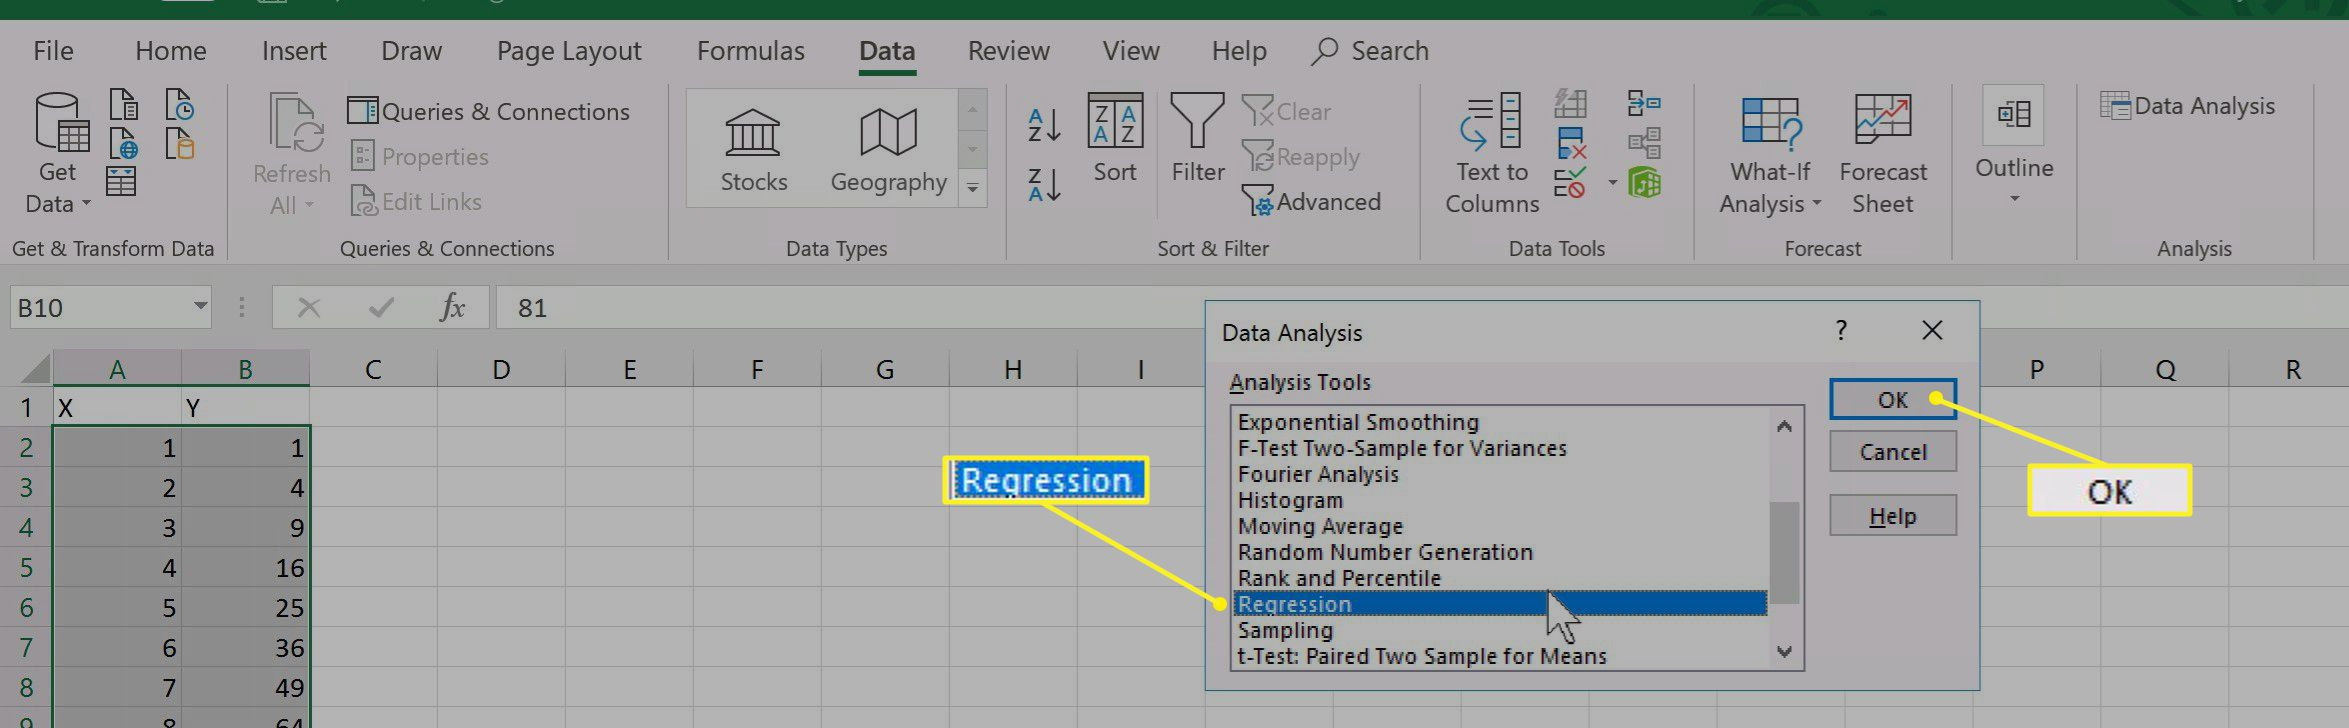 Data Analysis > Regression selection in Excel